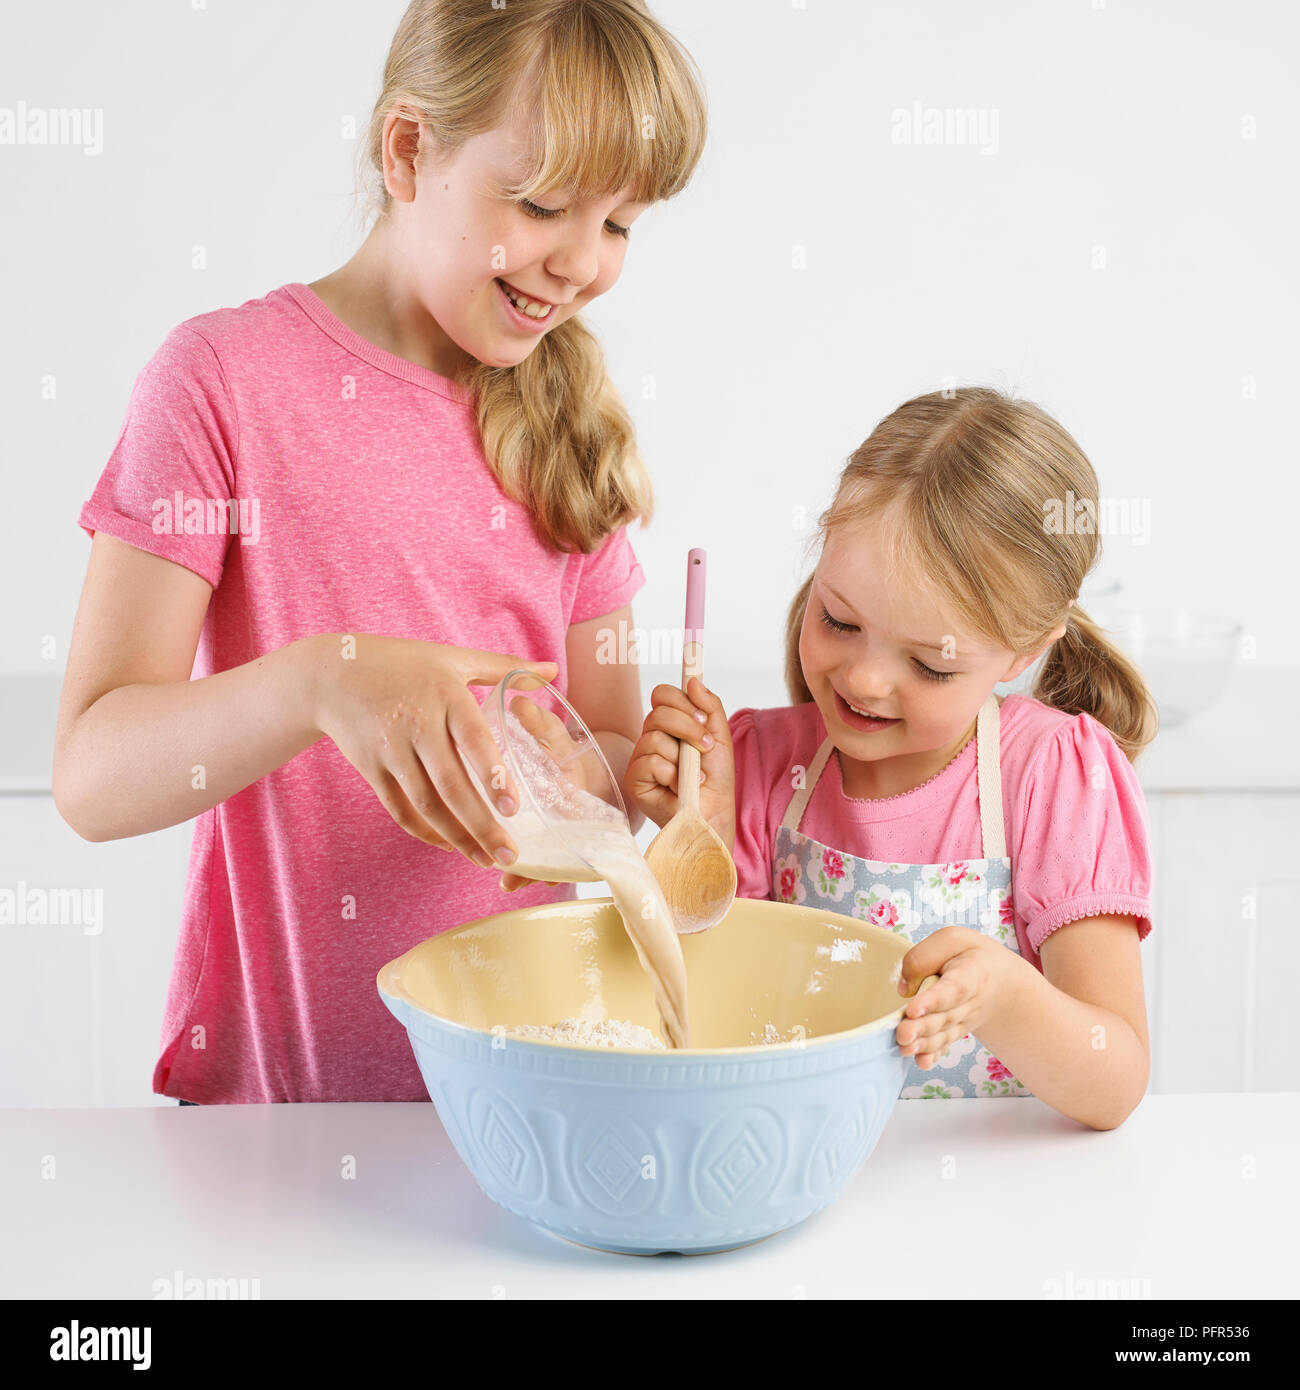 Girls pouring yeast and water mixture into bowl of flour, 5 years and 9 years - Stock Image